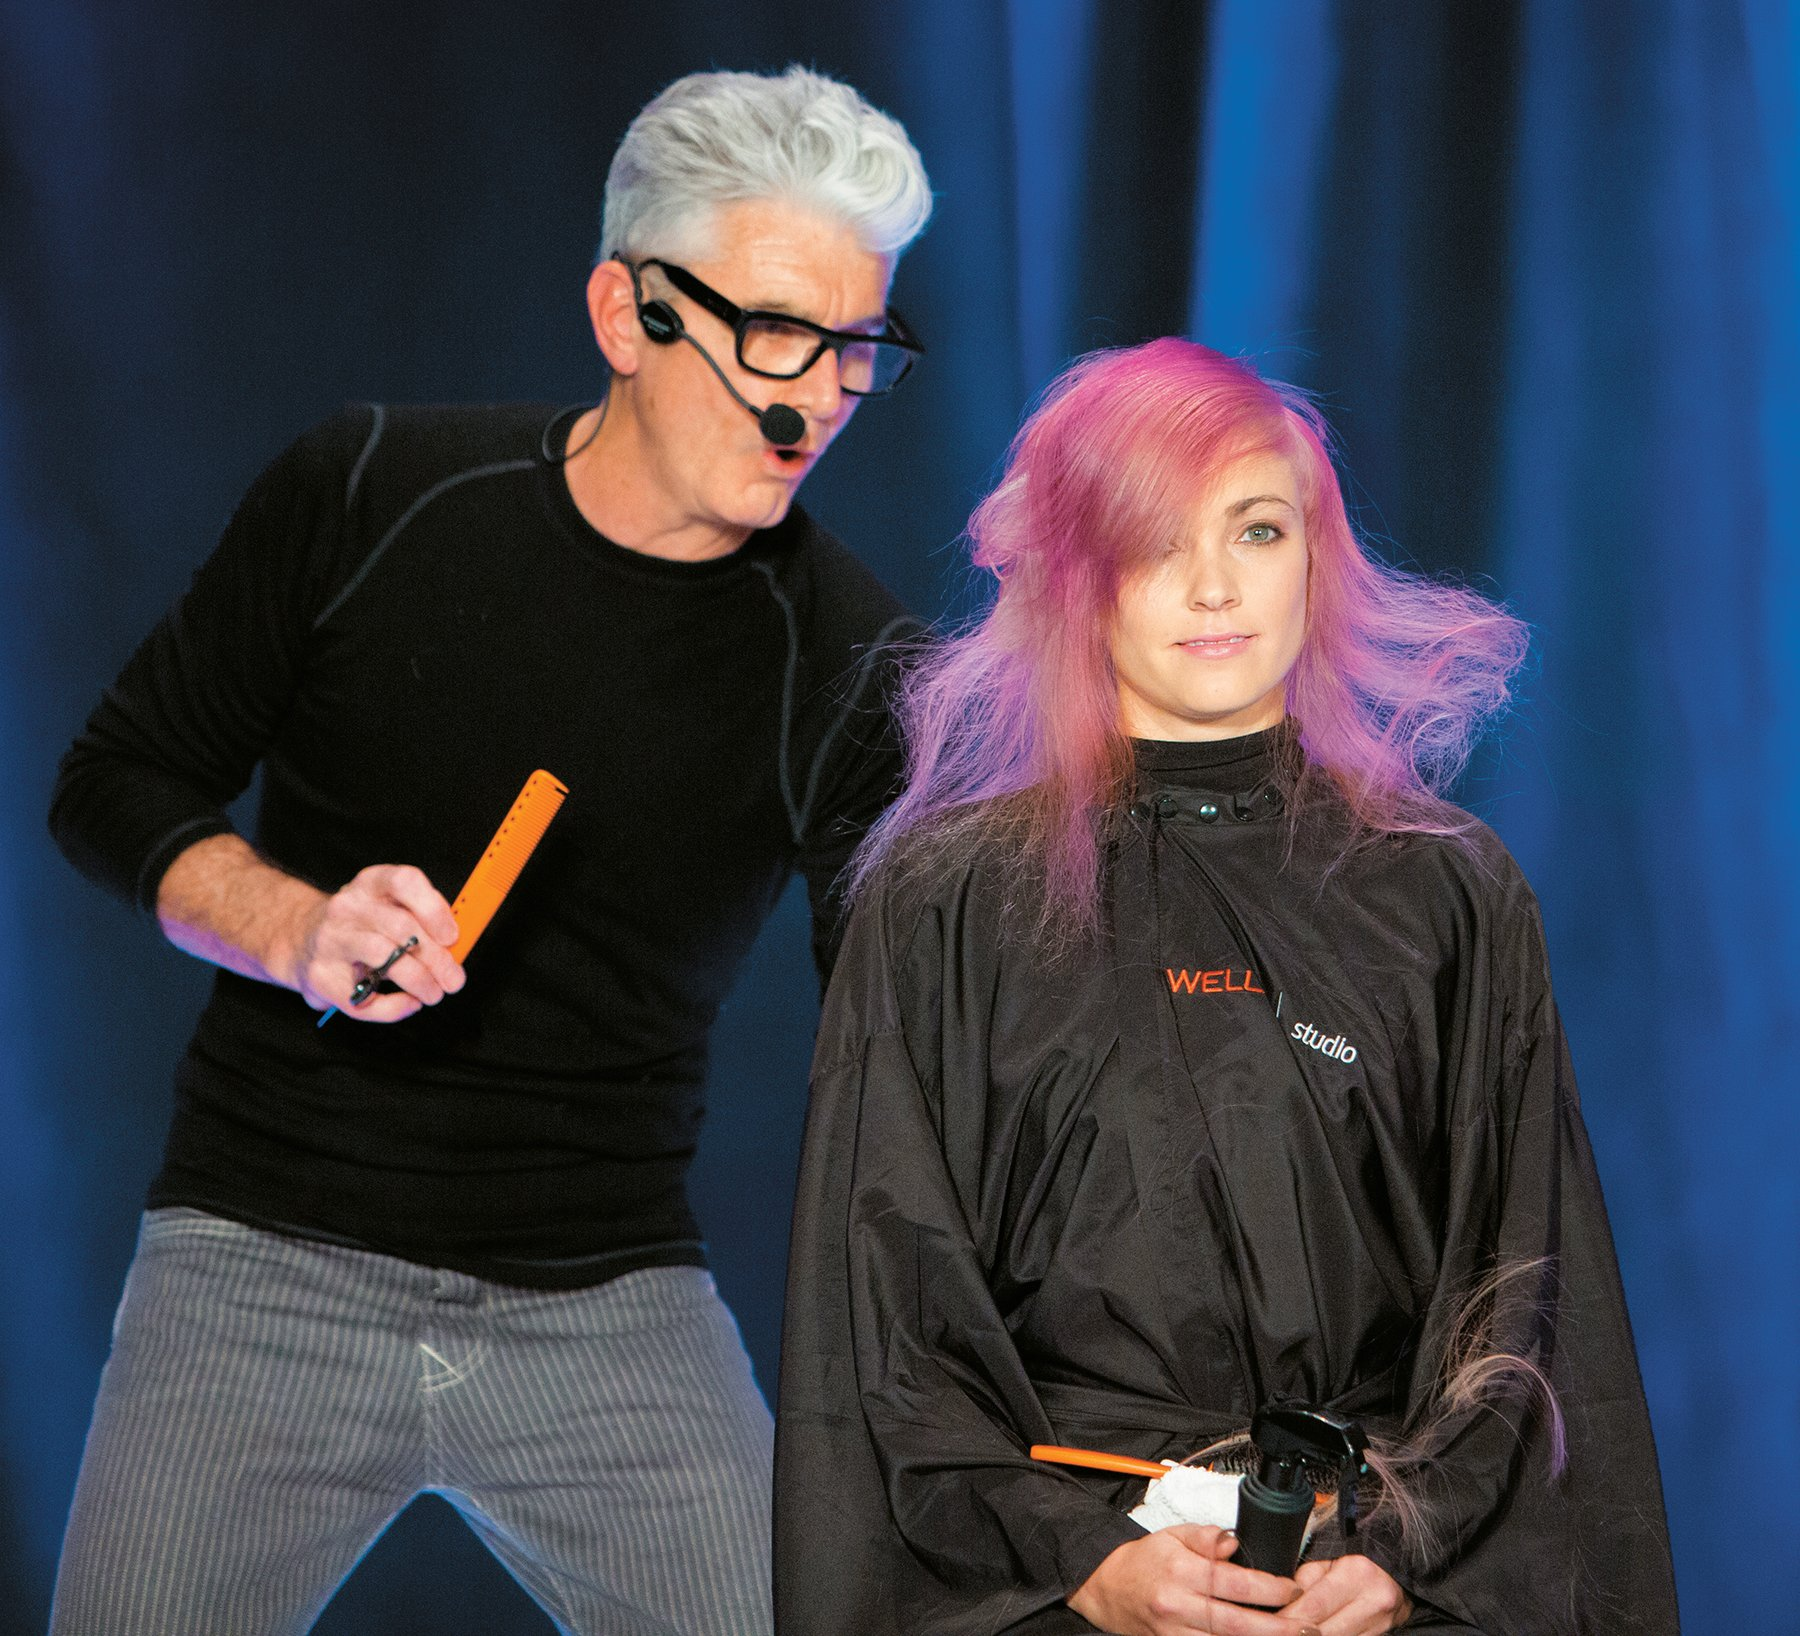 Stephen Moody gives his model finishing touches on stage at the Hairbrained Teach In.